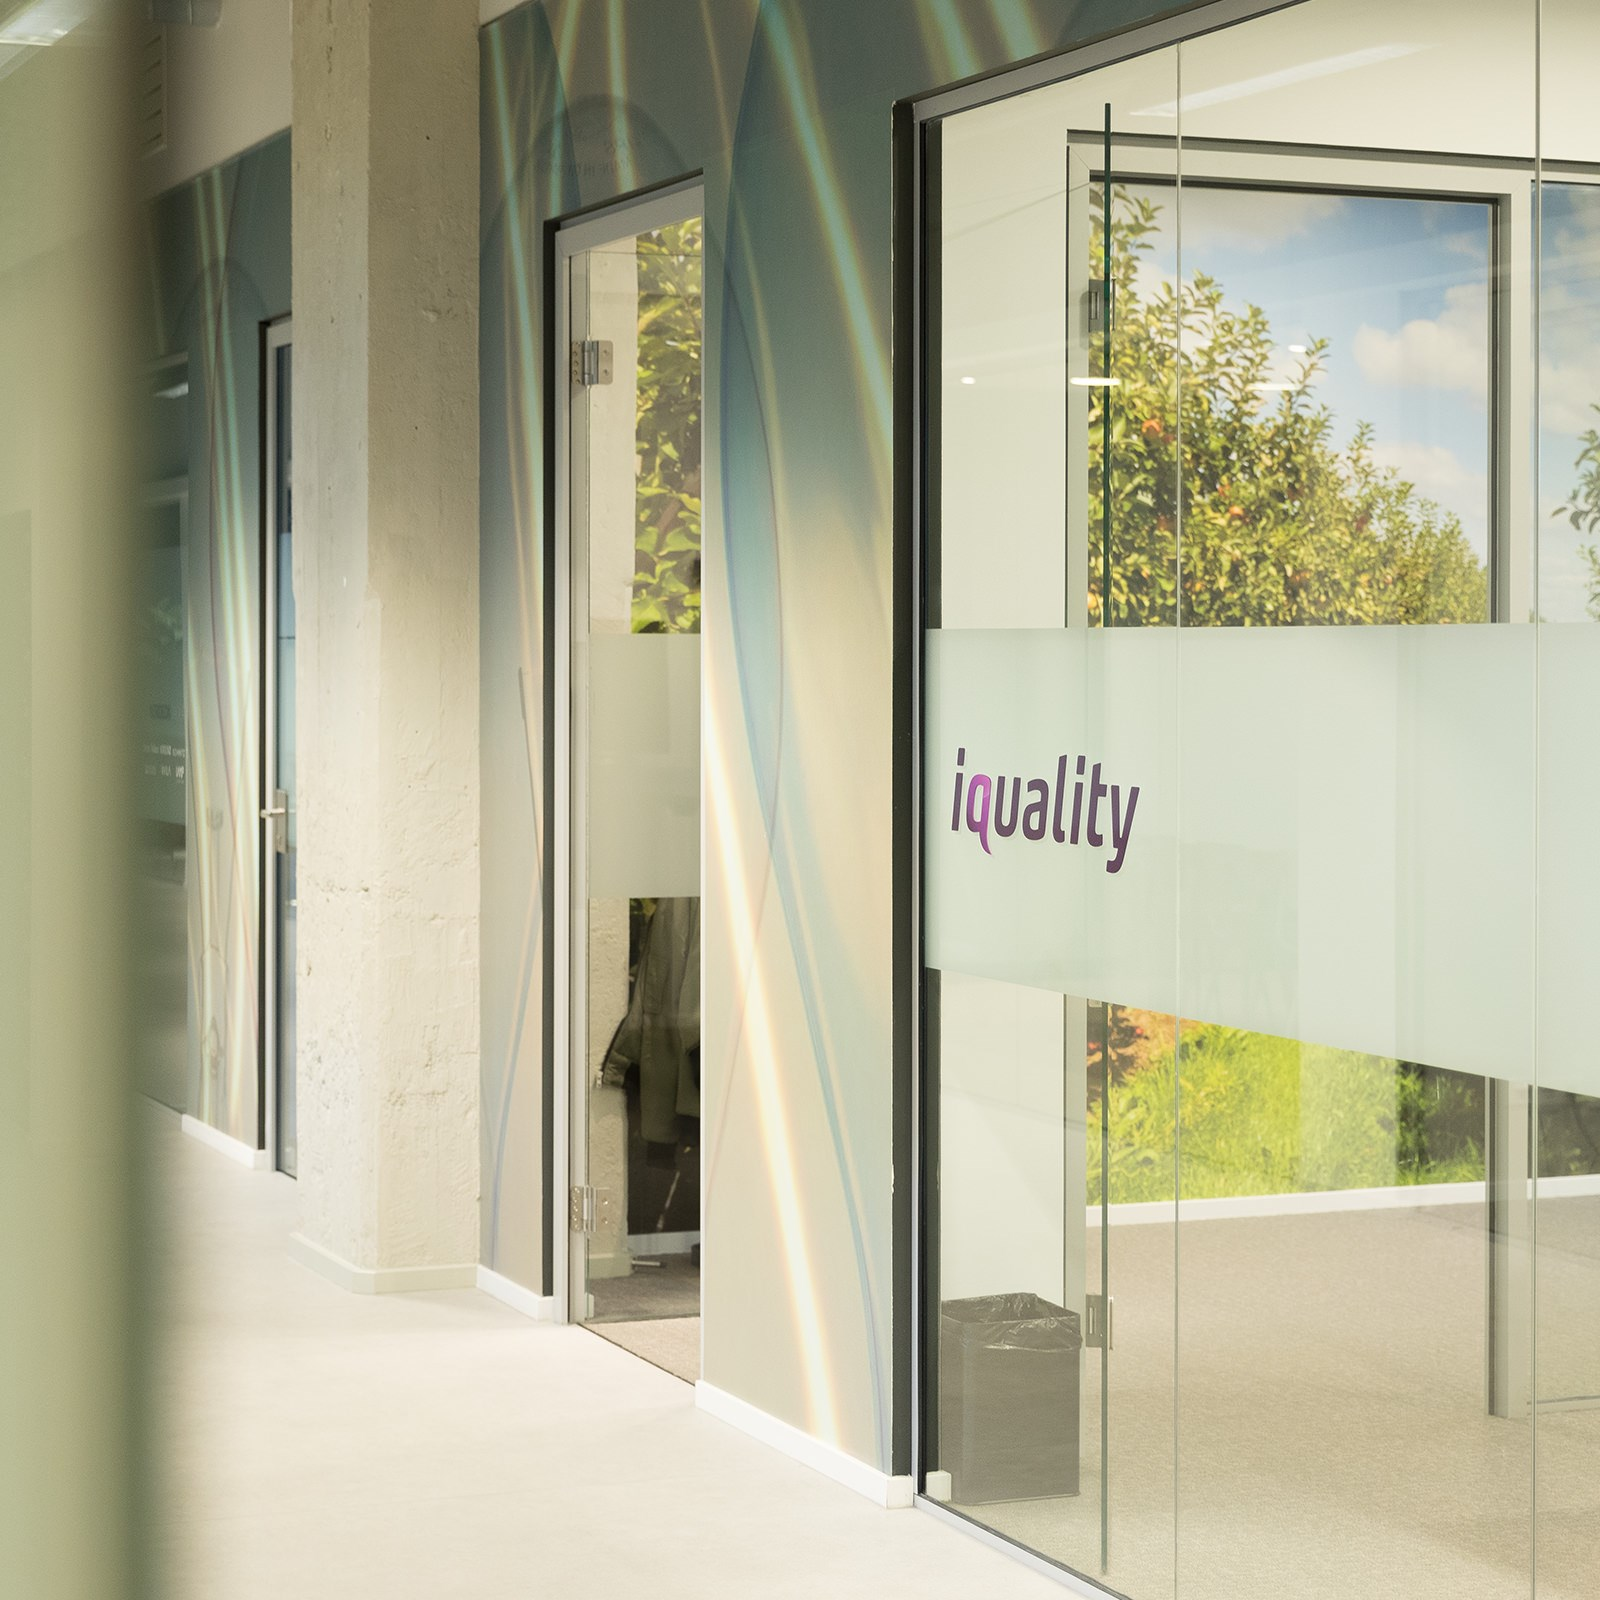 Igluu Iquality office Eindhoven